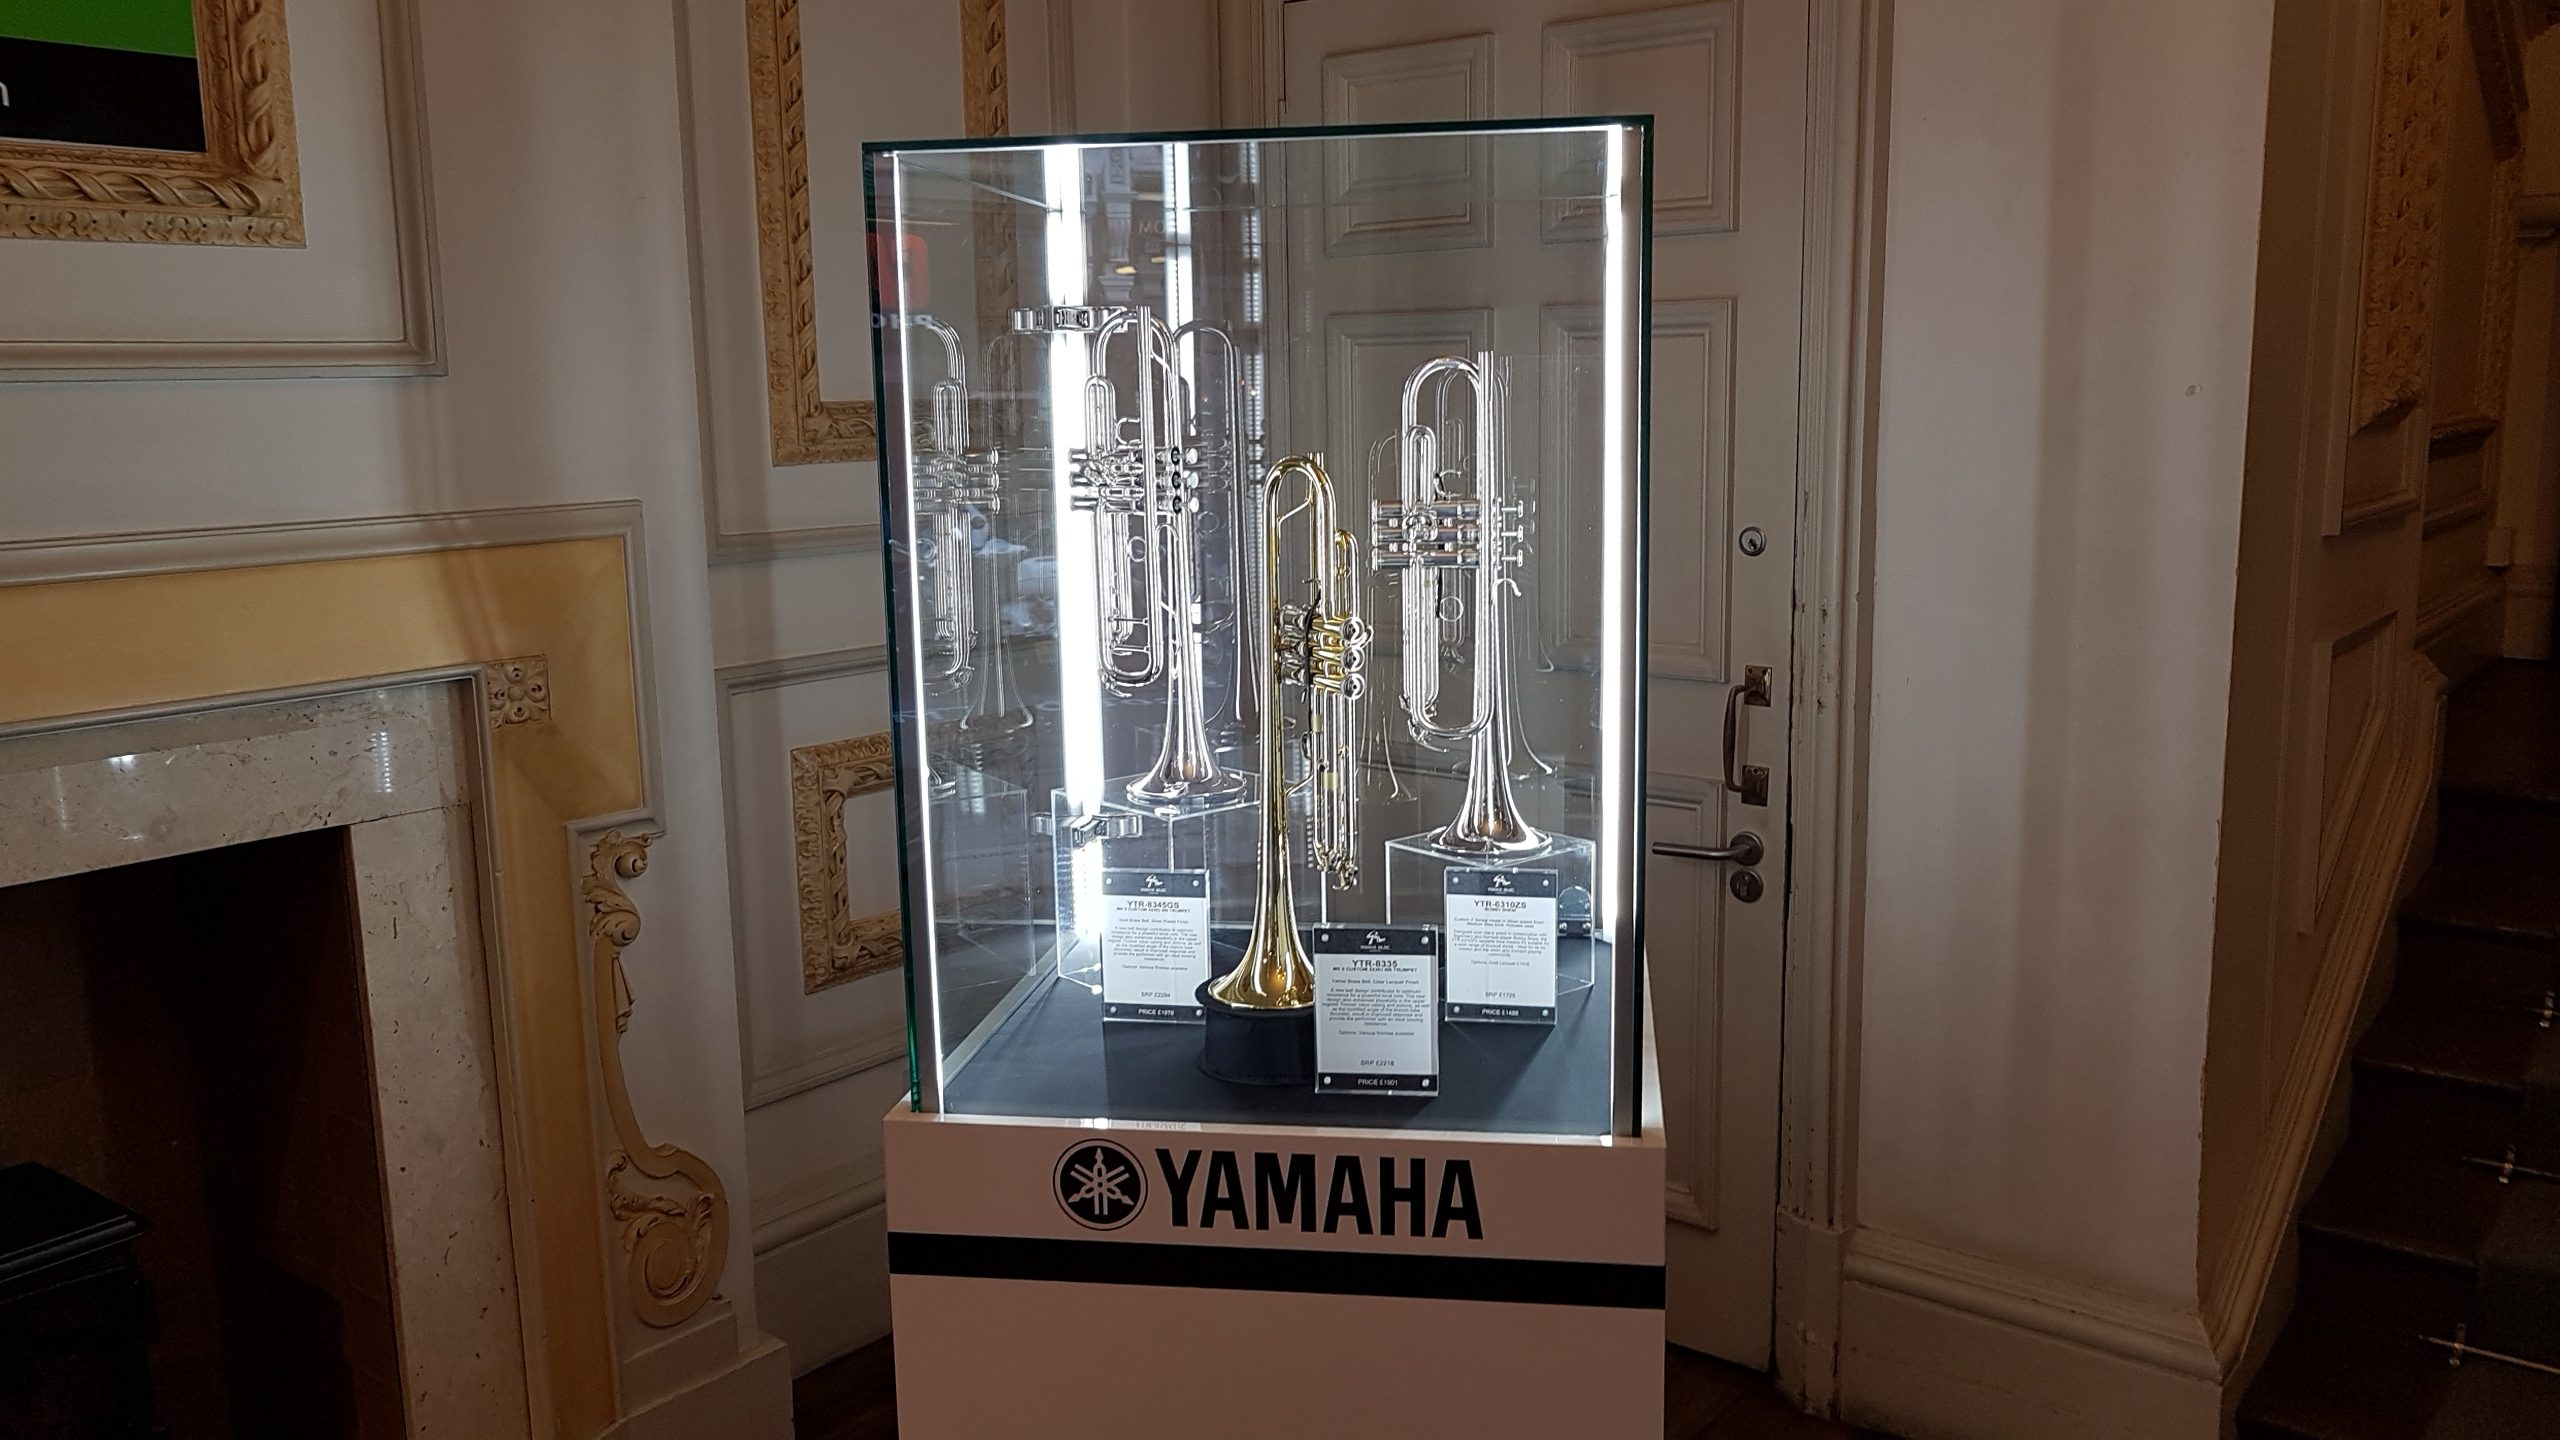 Yamaha London